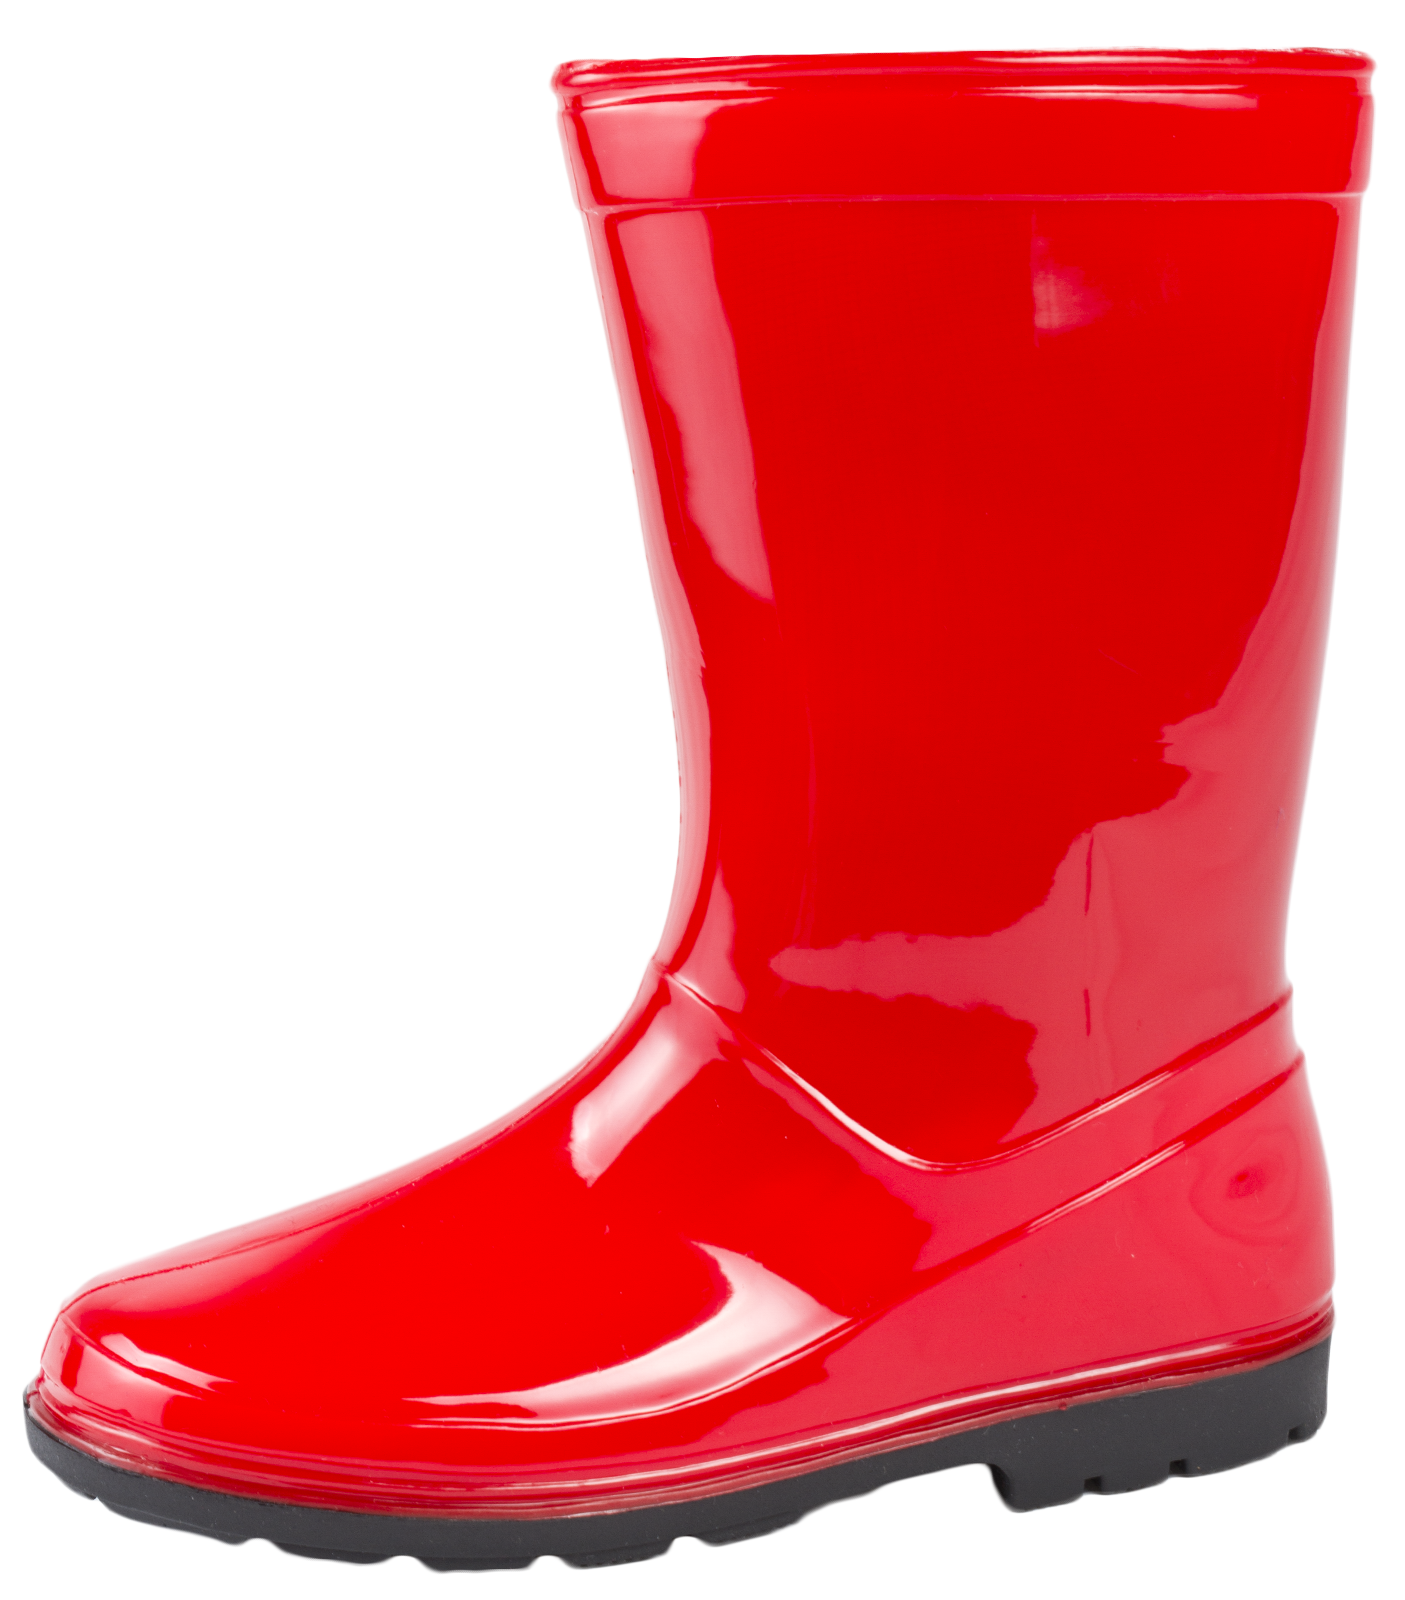 New Childrens Wellington Boots Snow Rain Shoes Wellys Wellies Boys Girls Size